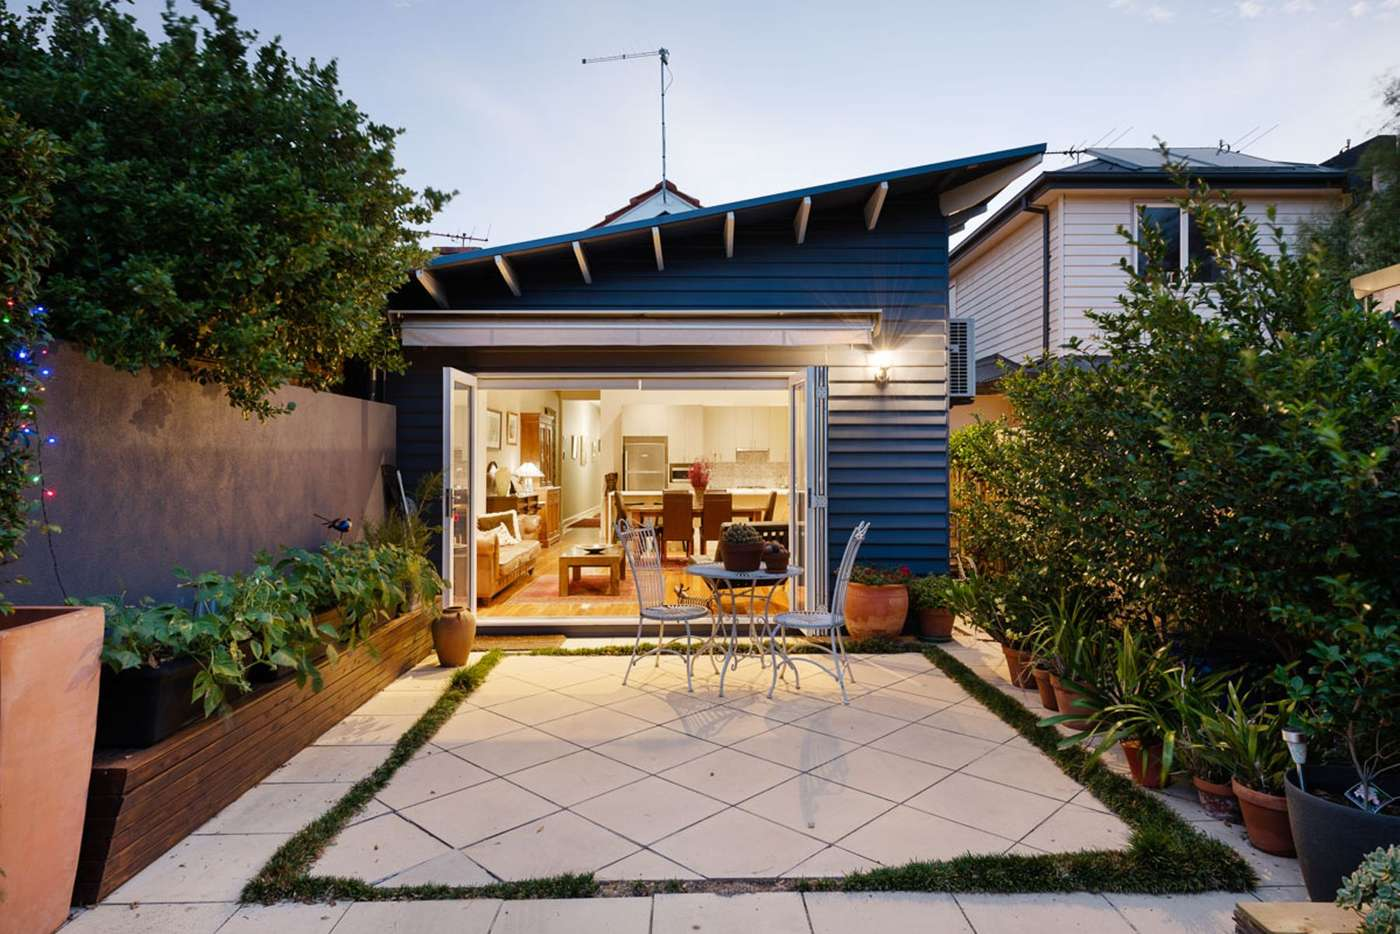 Main view of Homely house listing, 130 Gladstone Avenue, Northcote VIC 3070